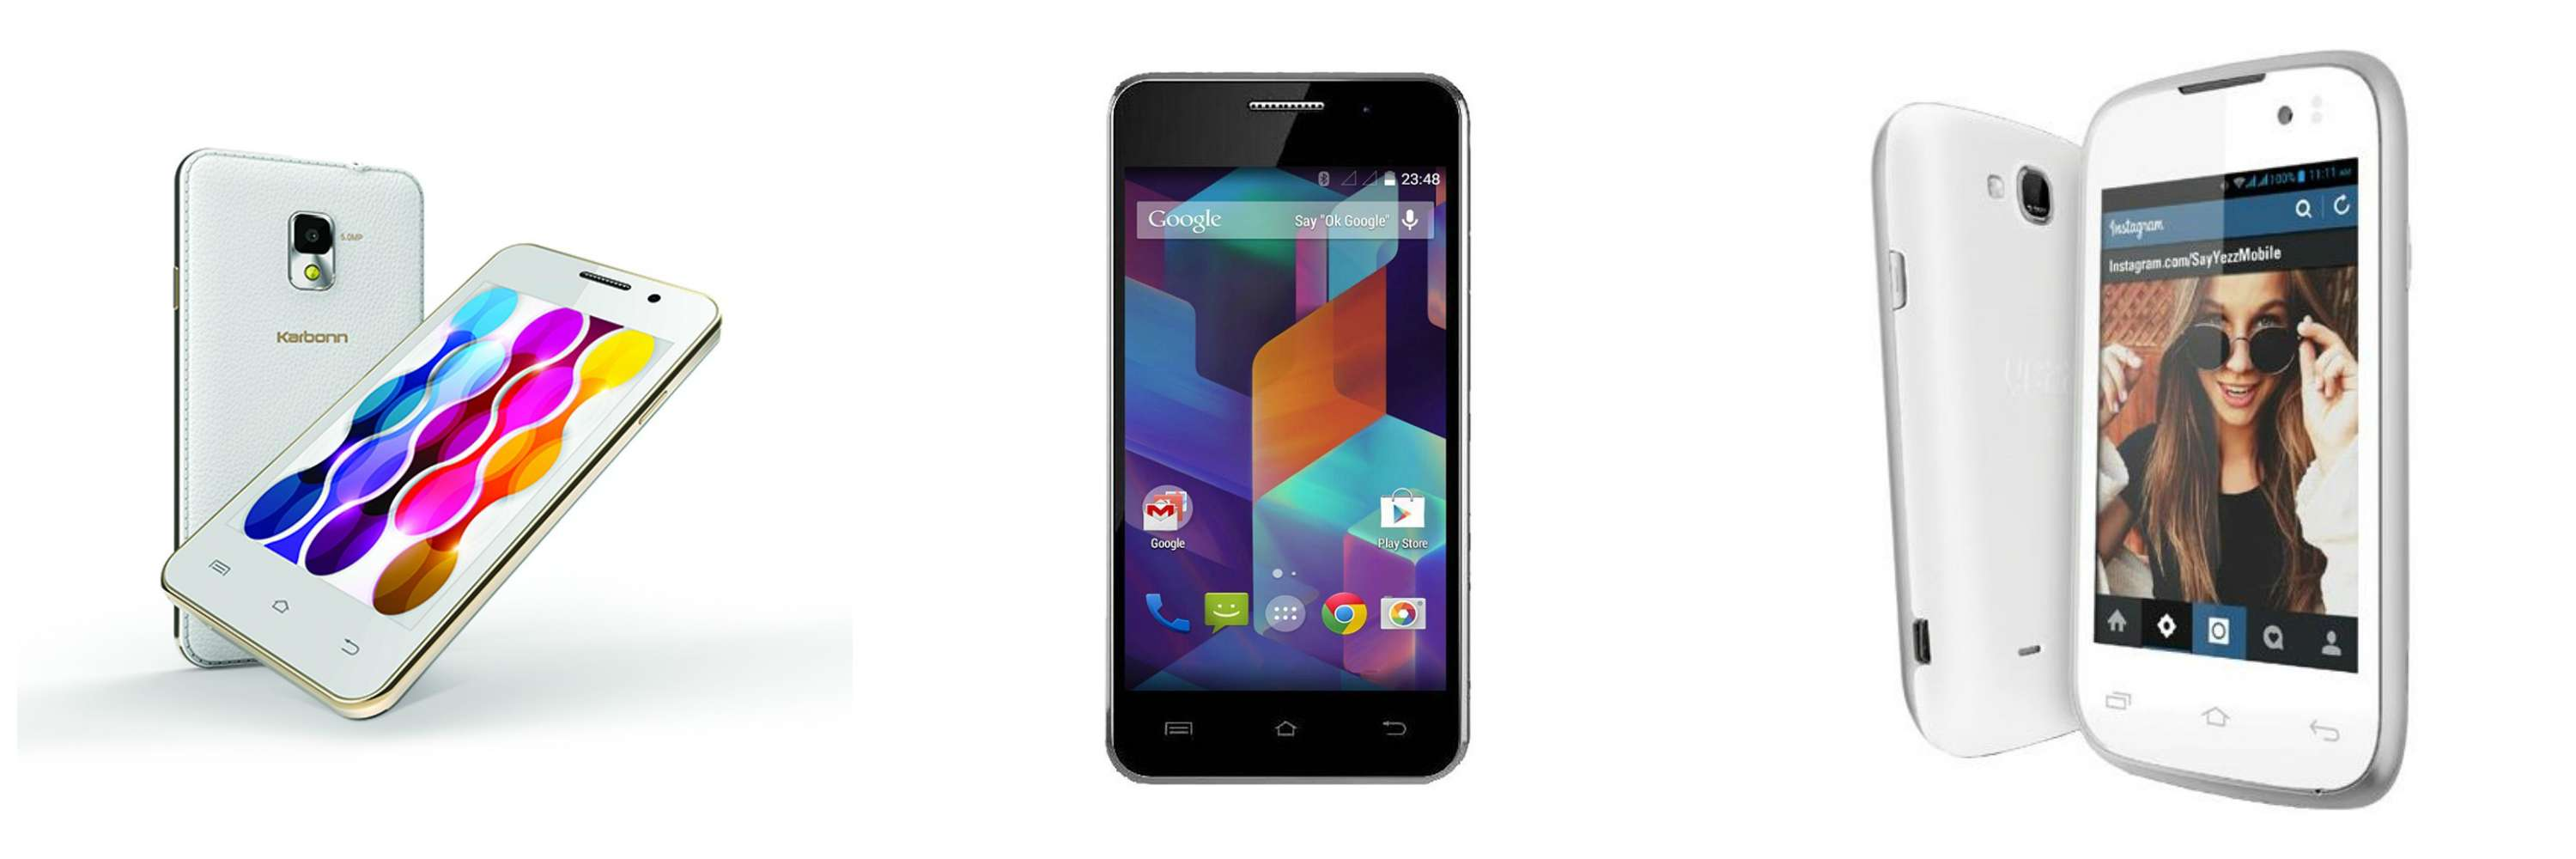 Cheap smartphones top features at budget price 7dayshop blog - Low cost decorating ideas seven smart tips ...